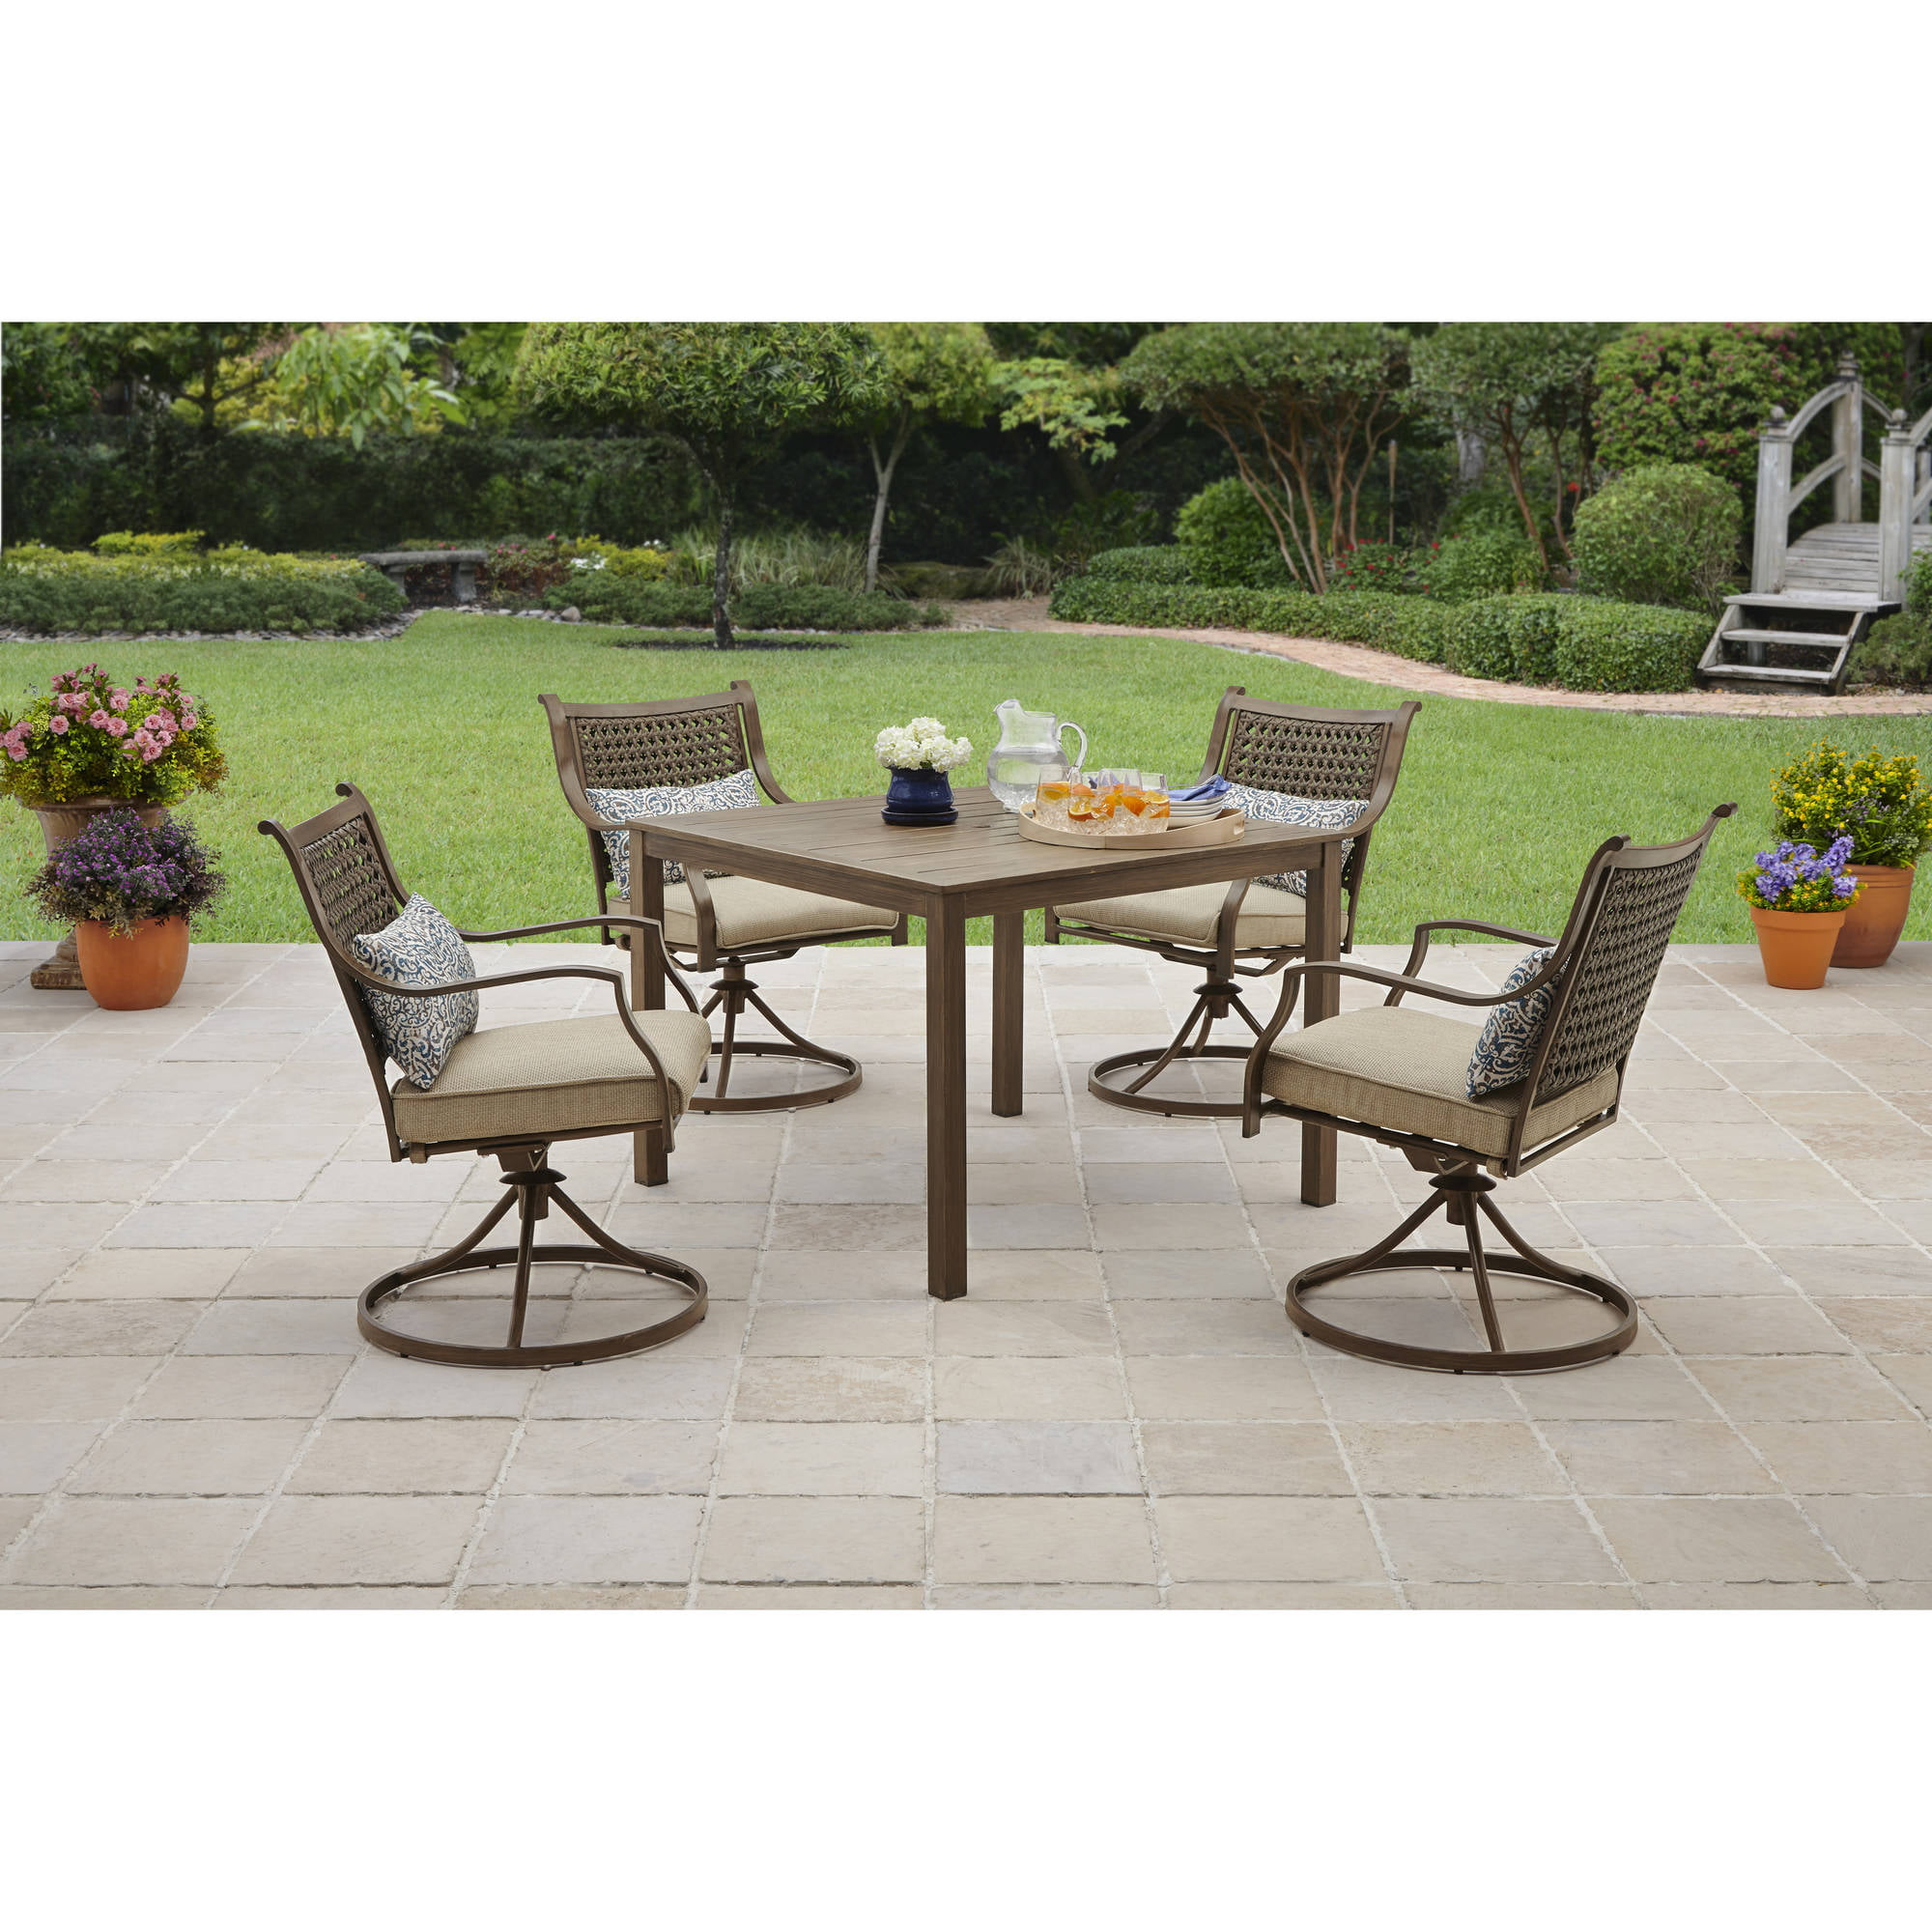 Better homes and gardens bramblewood 7 piece patio dining for Better homes and gardens azalea ridge chaise lounge